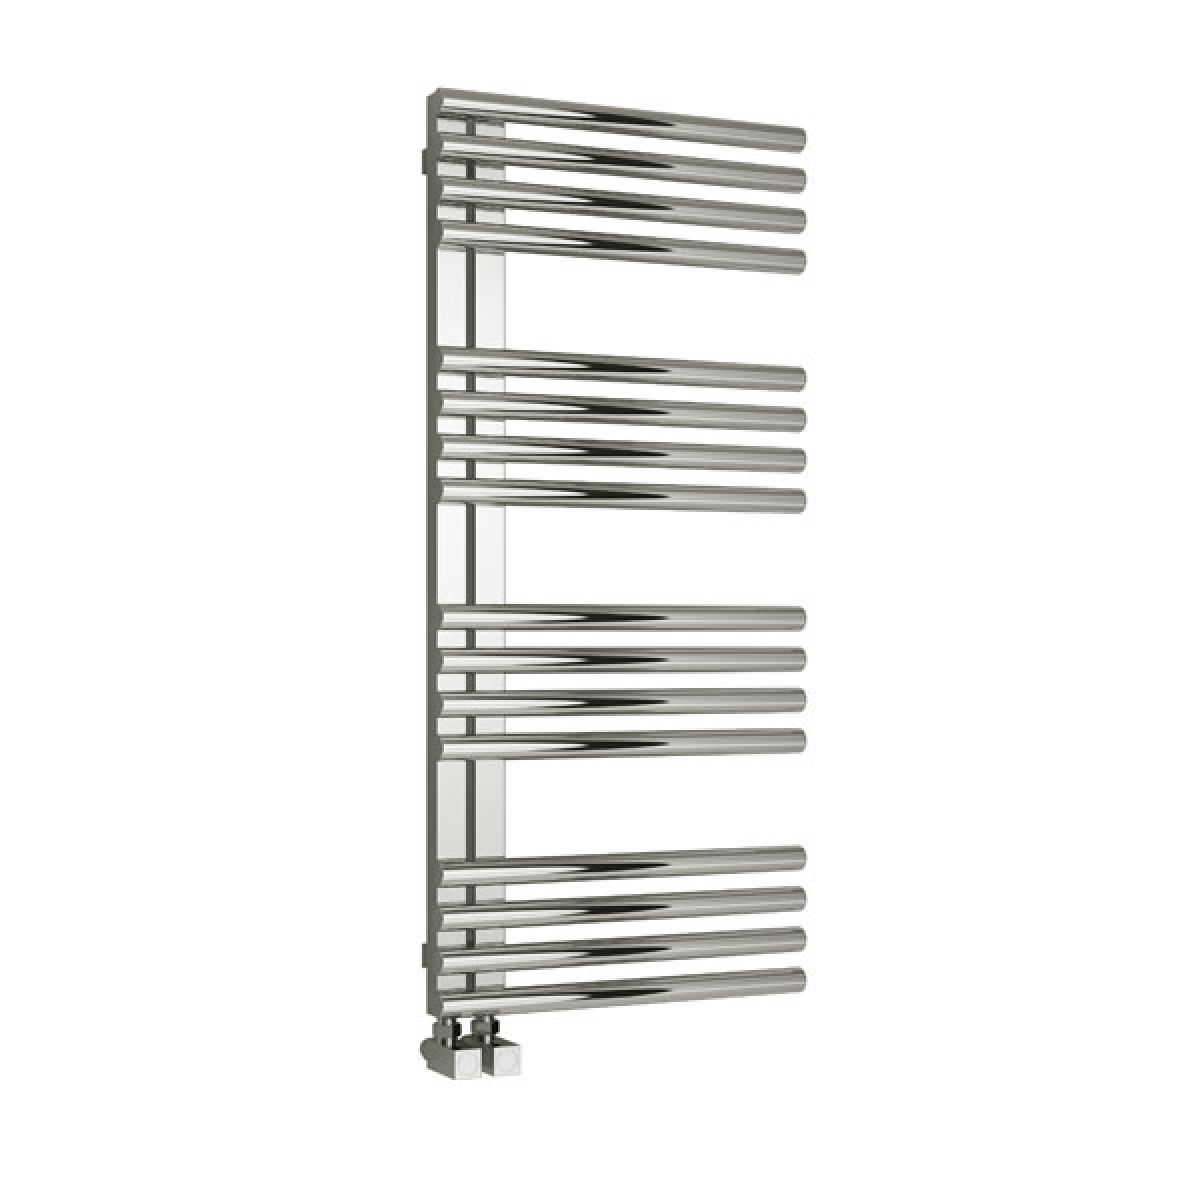 Reina Adora Polished Finish Stainless Steel Electric Radiator 1106mm x 500mm